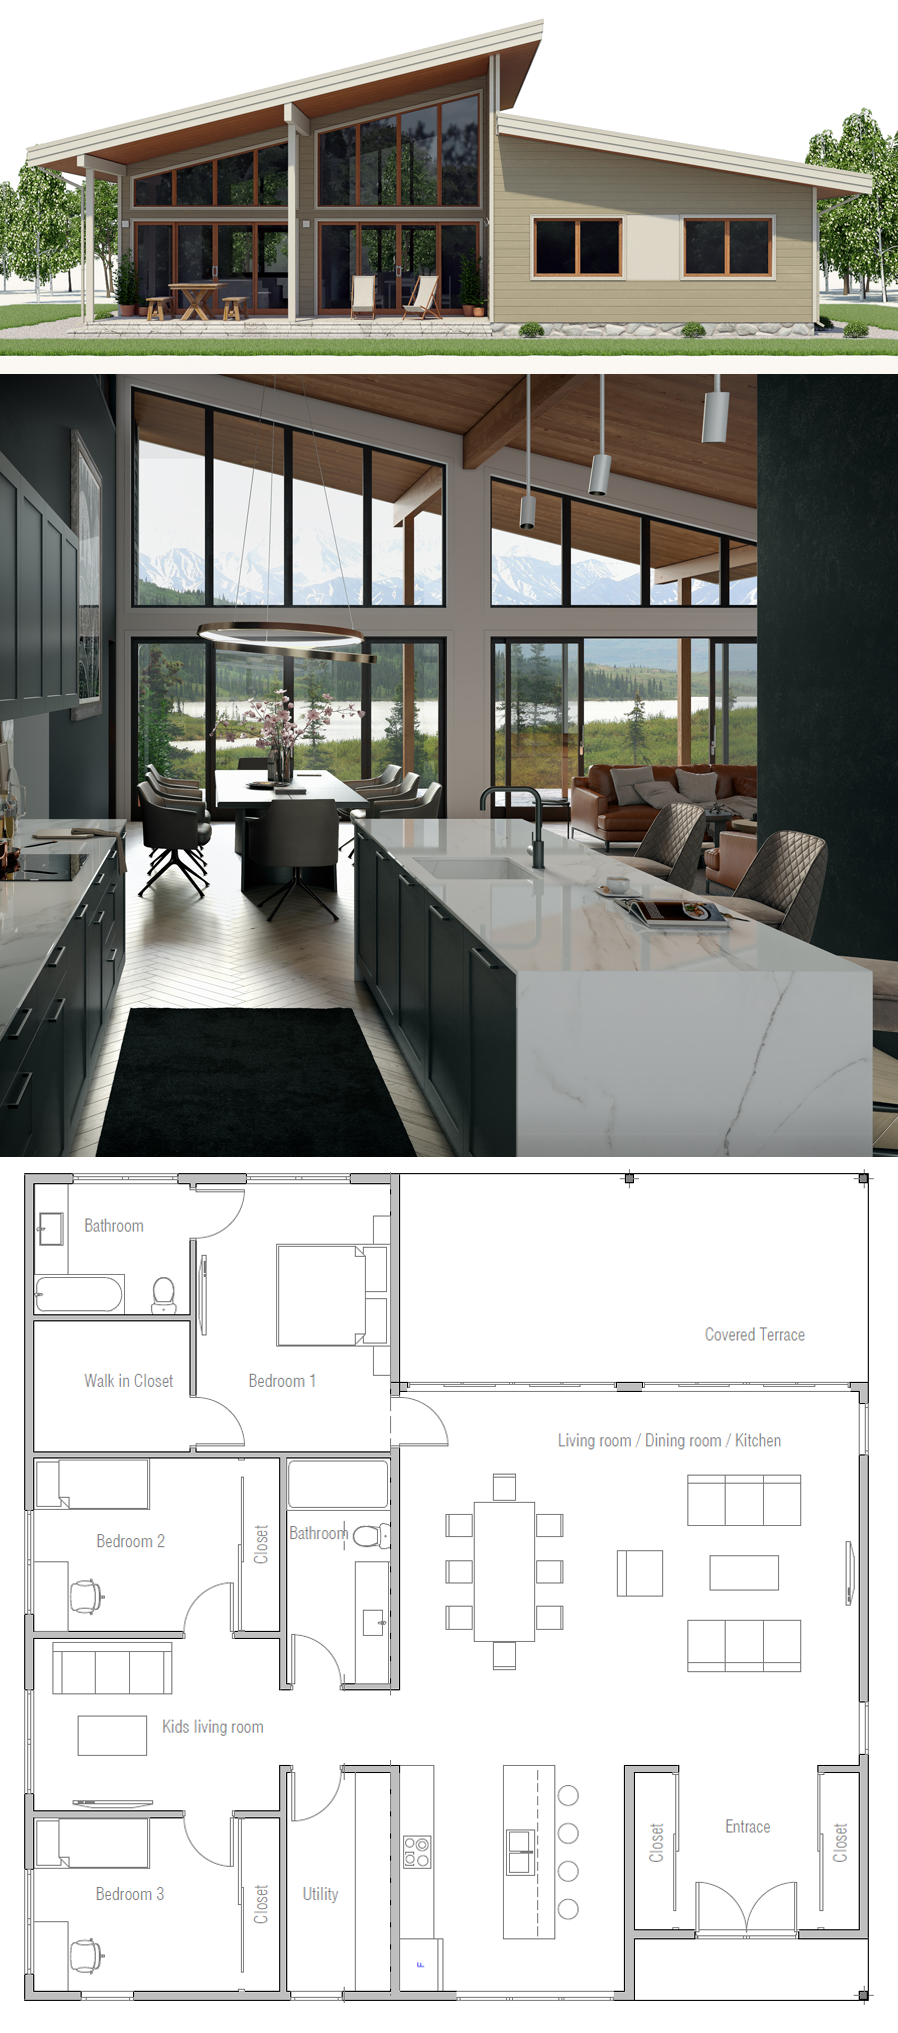 Small house plan love all the windows and light